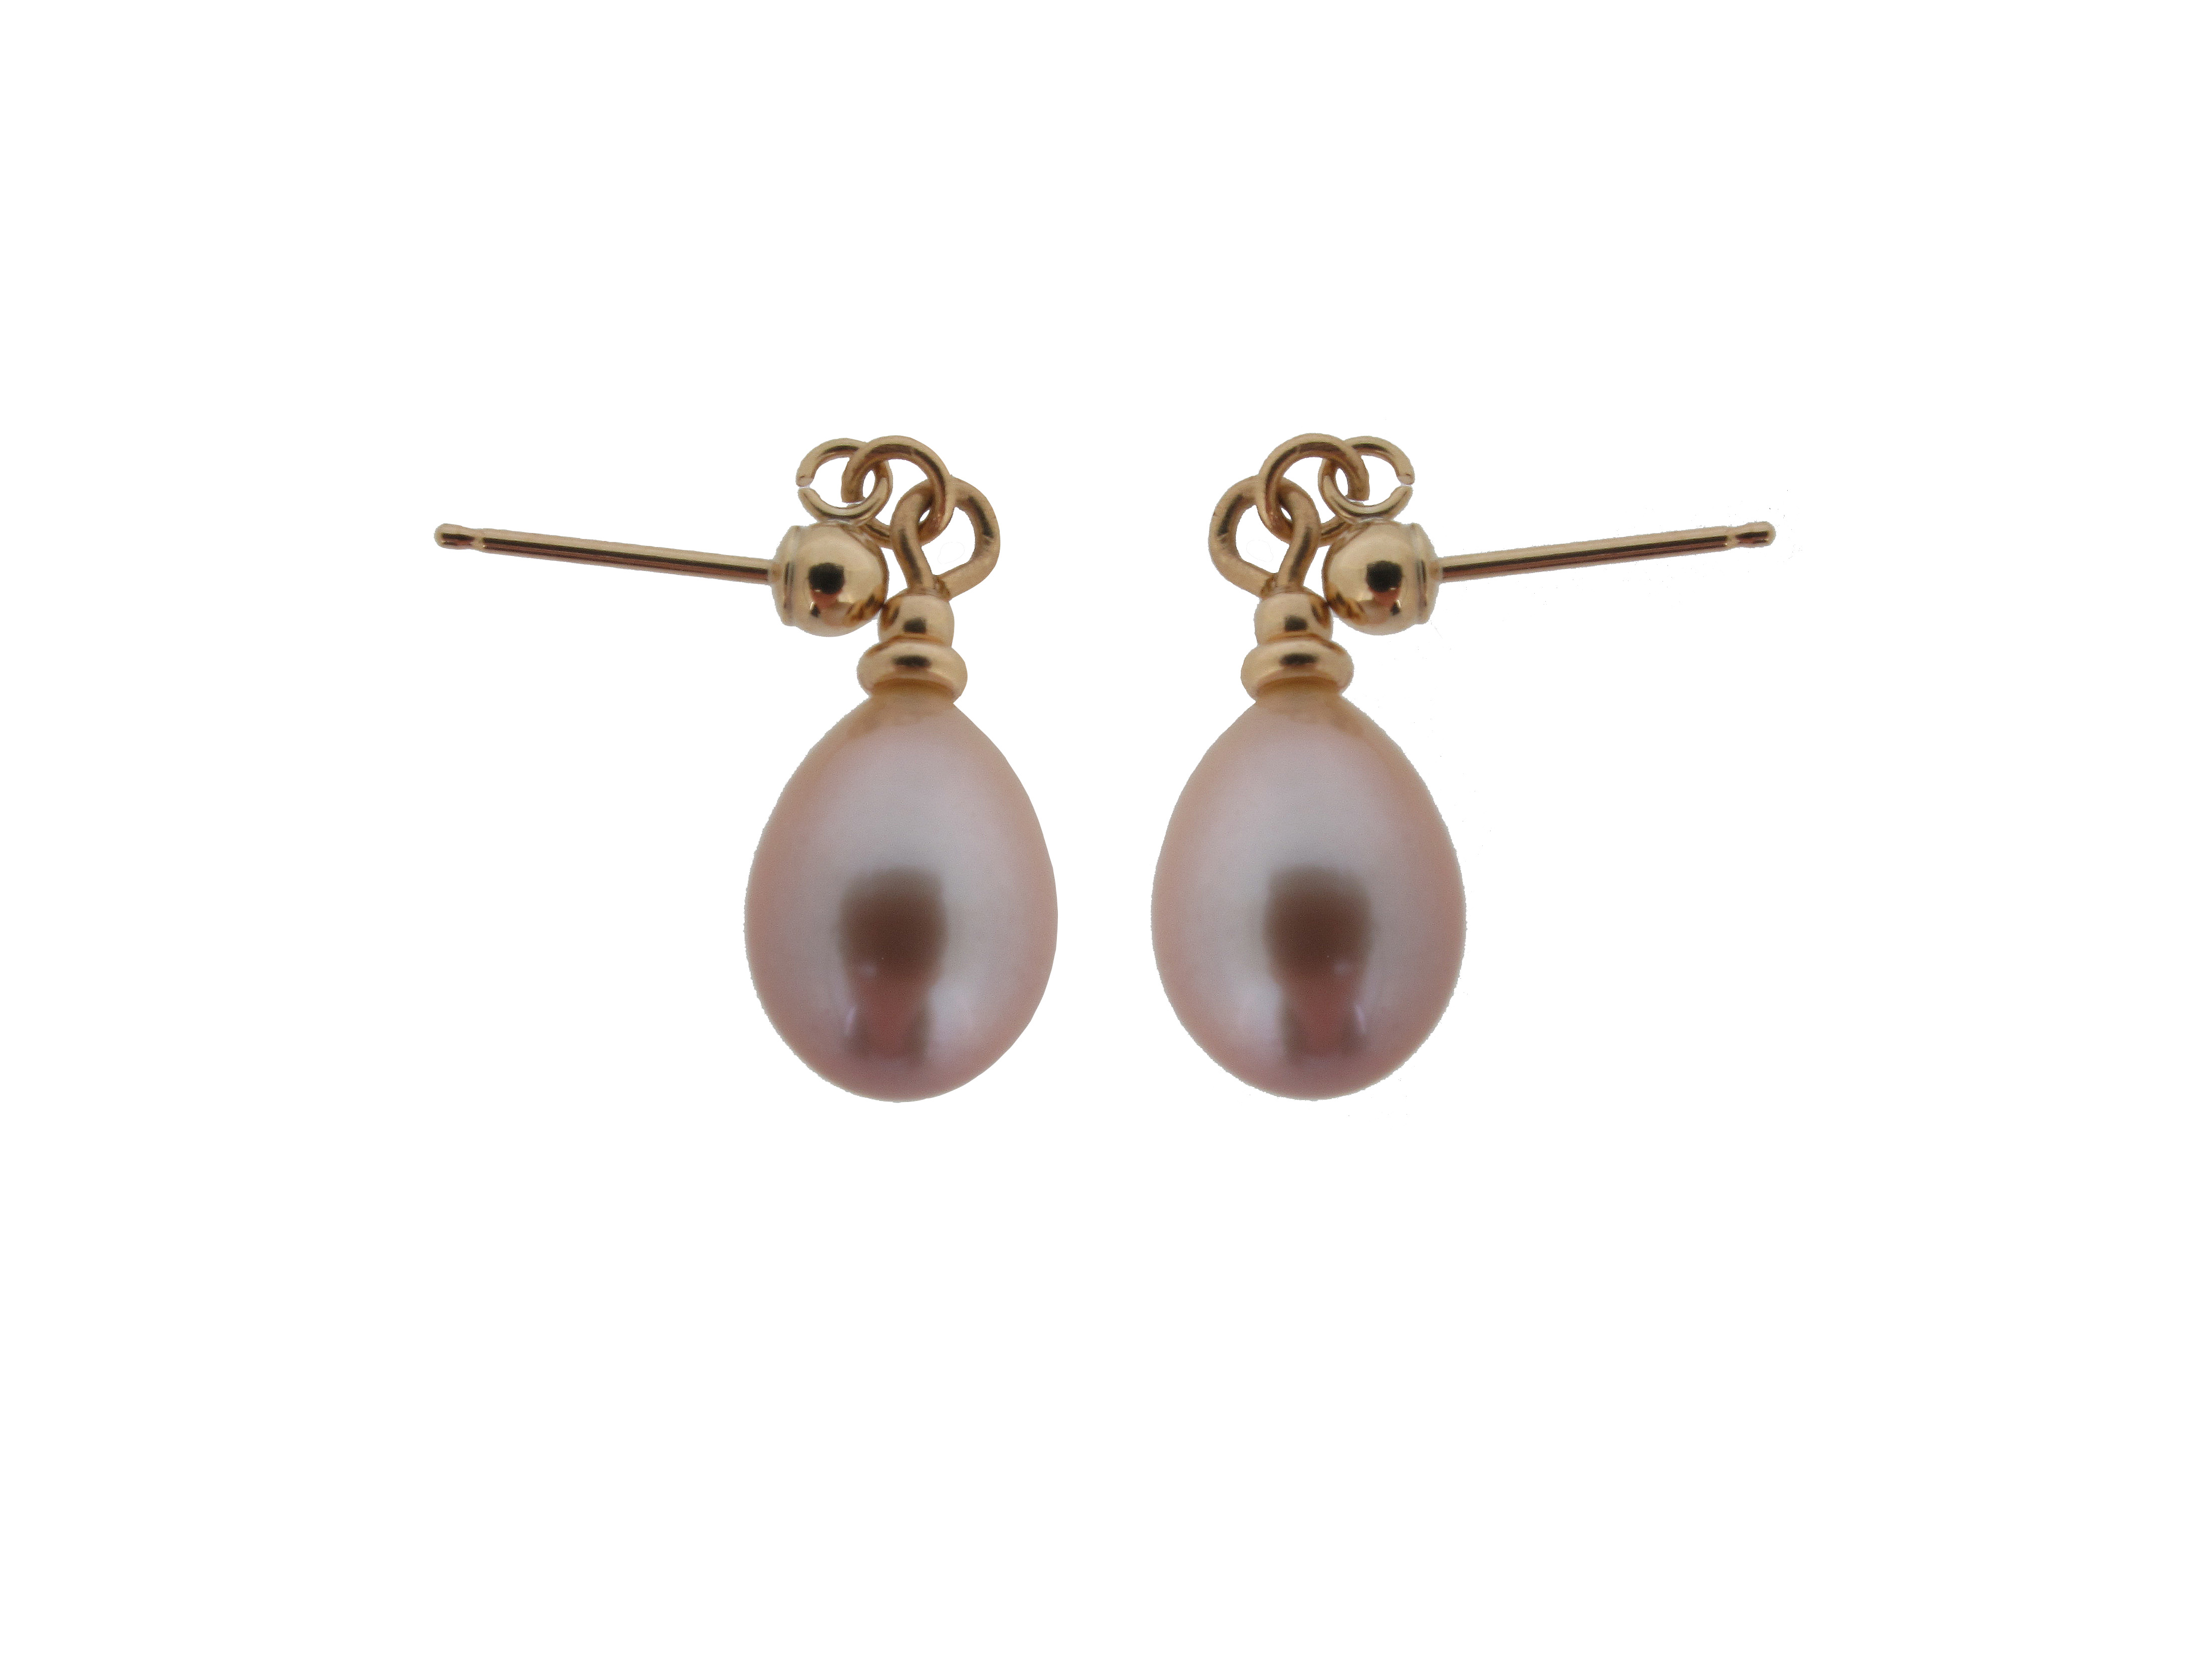 9ct yellow gold pink pearl earrings